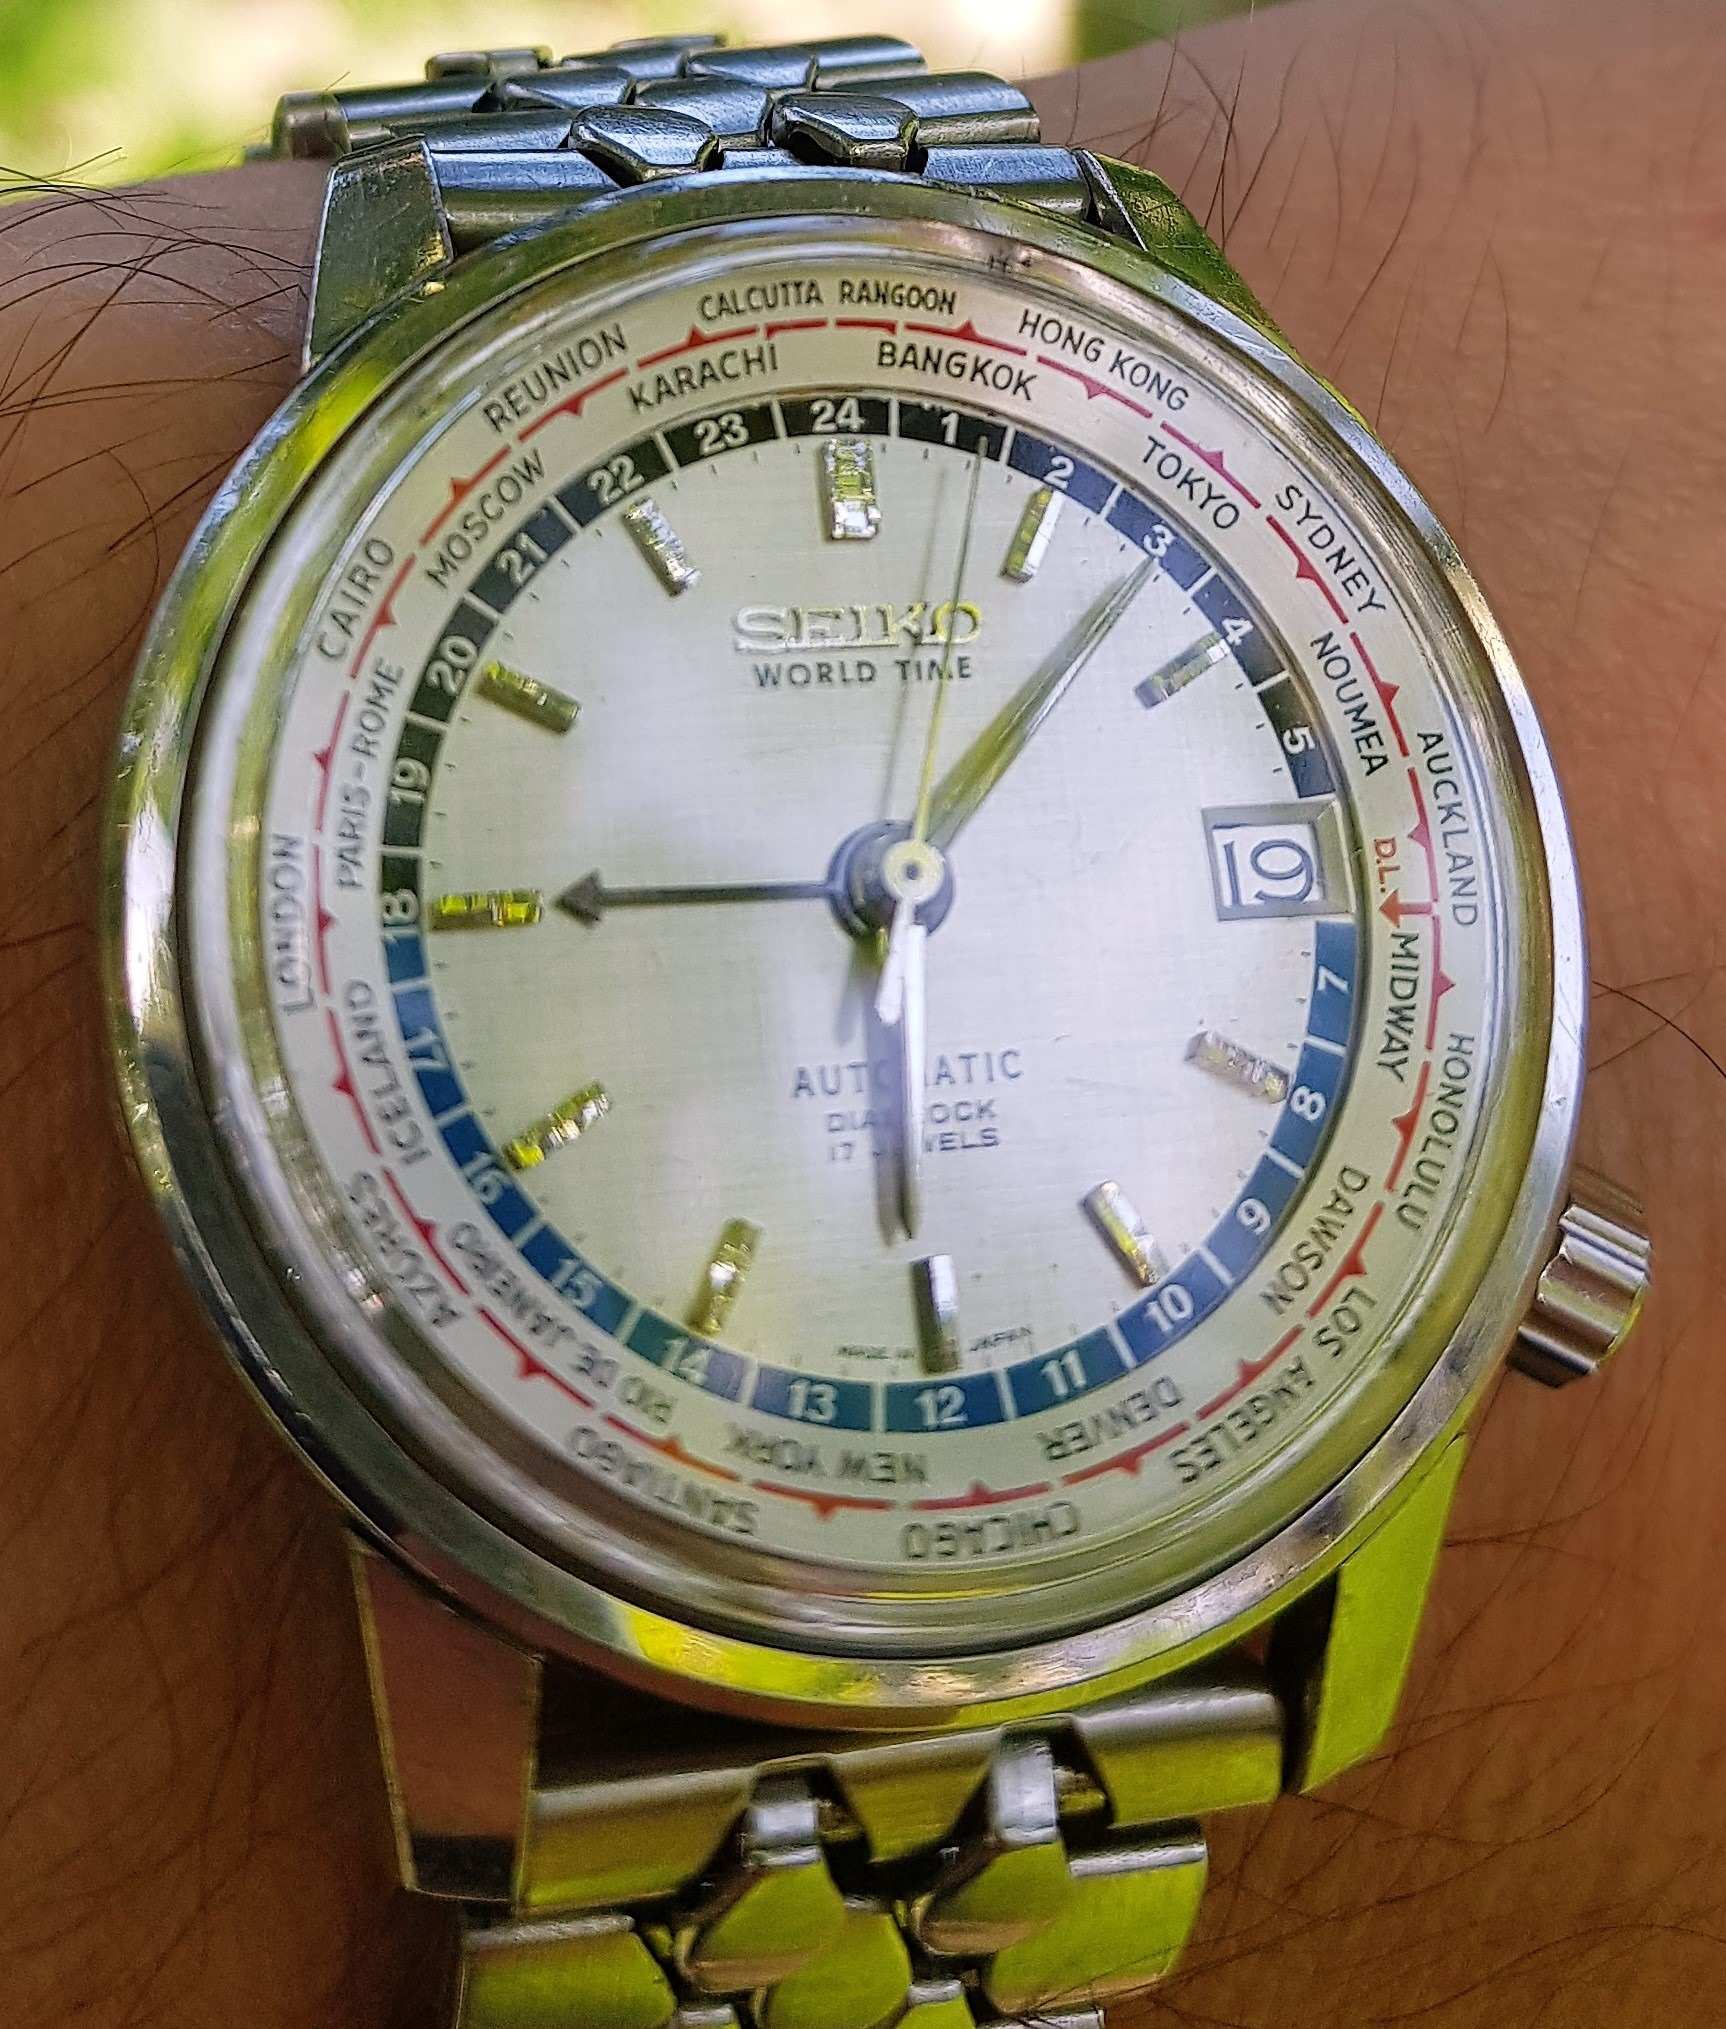 Seiko World Time 6217-7000 London time